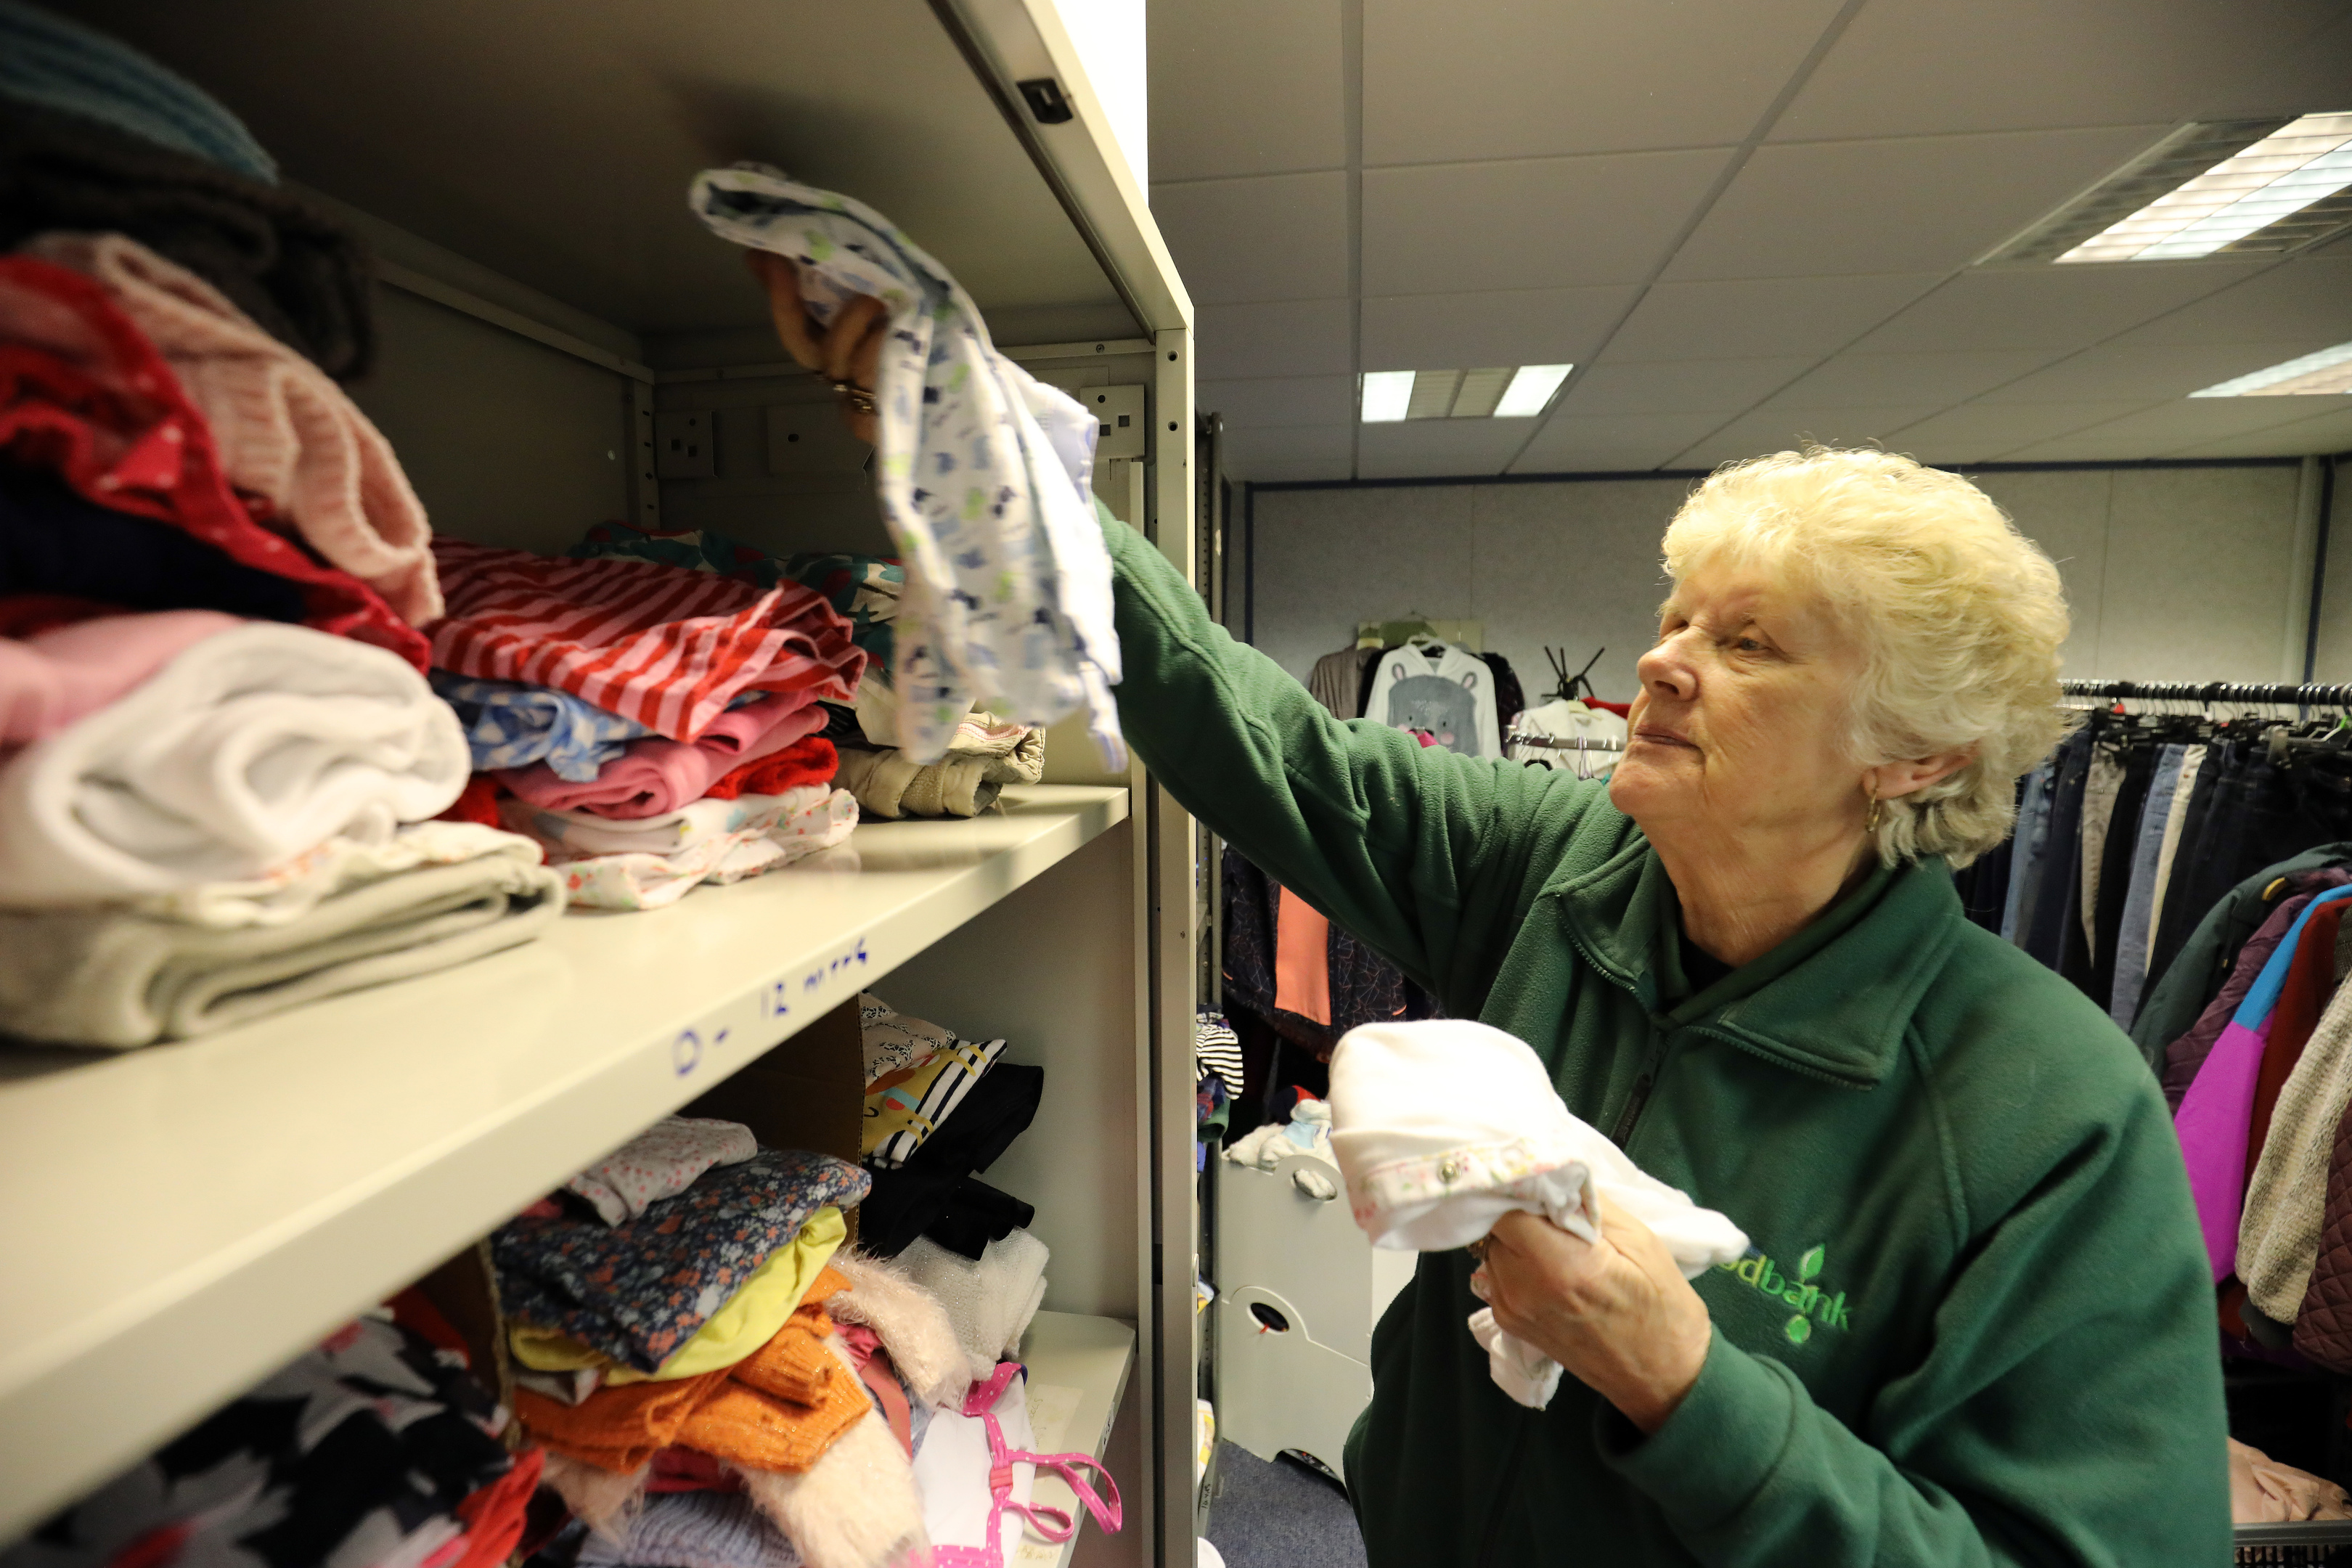 Glenrothes foodbank - 'poverty will not be resolved by technology'